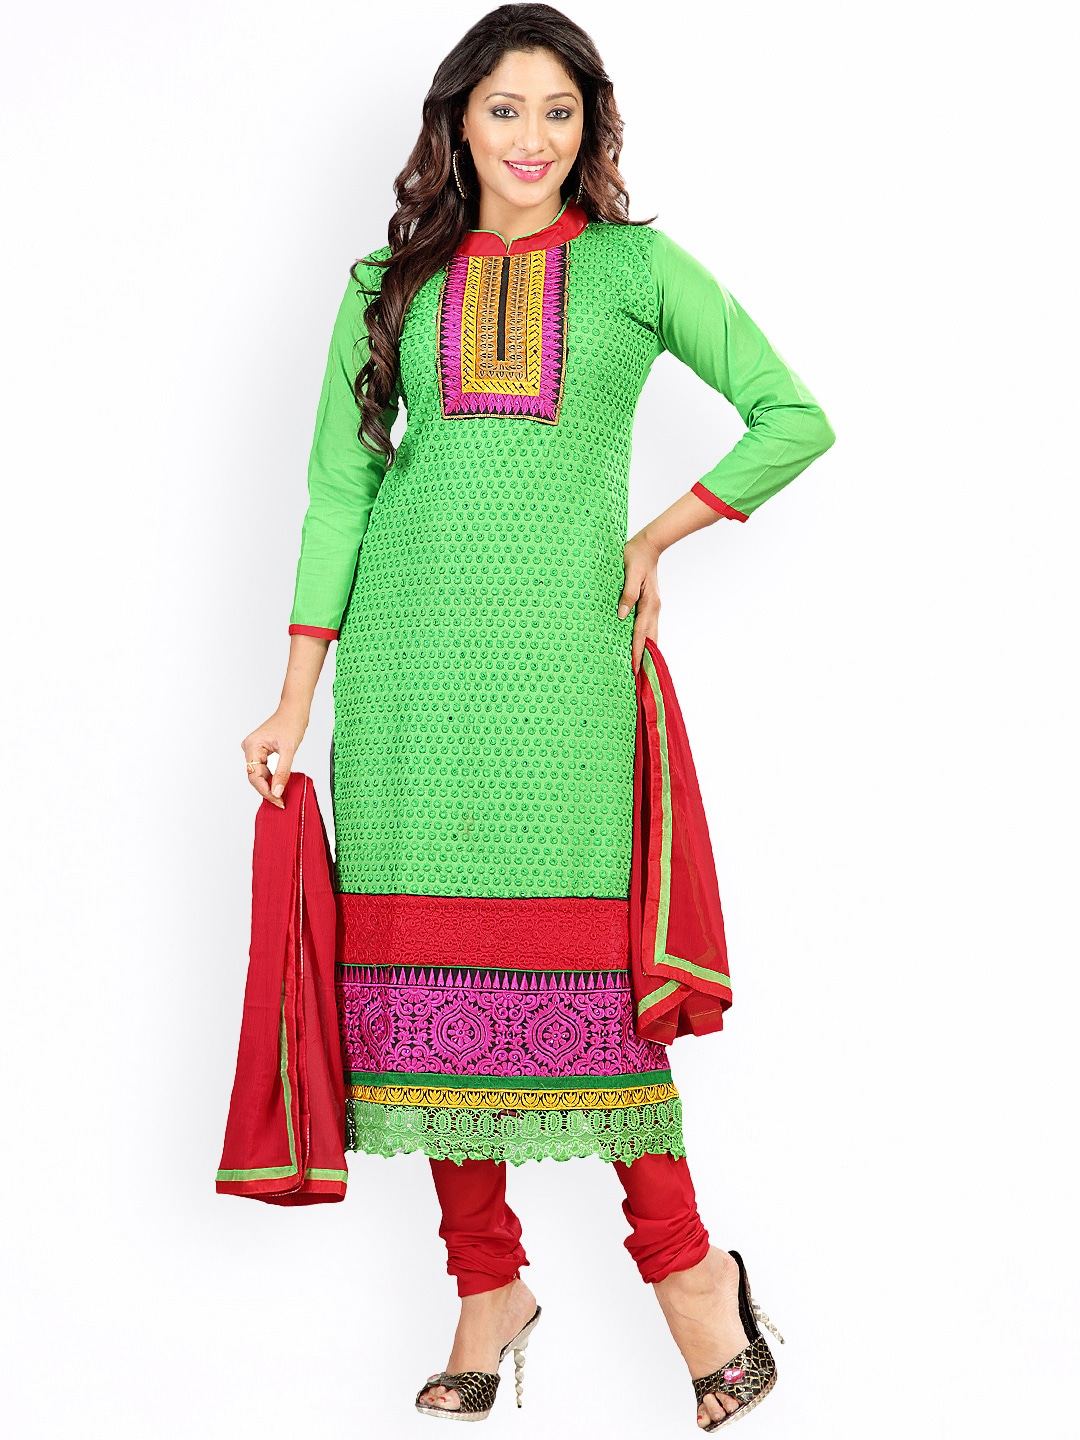 Florence Green & Red Embroidered Georgette Semi-Stitched Dress Material image